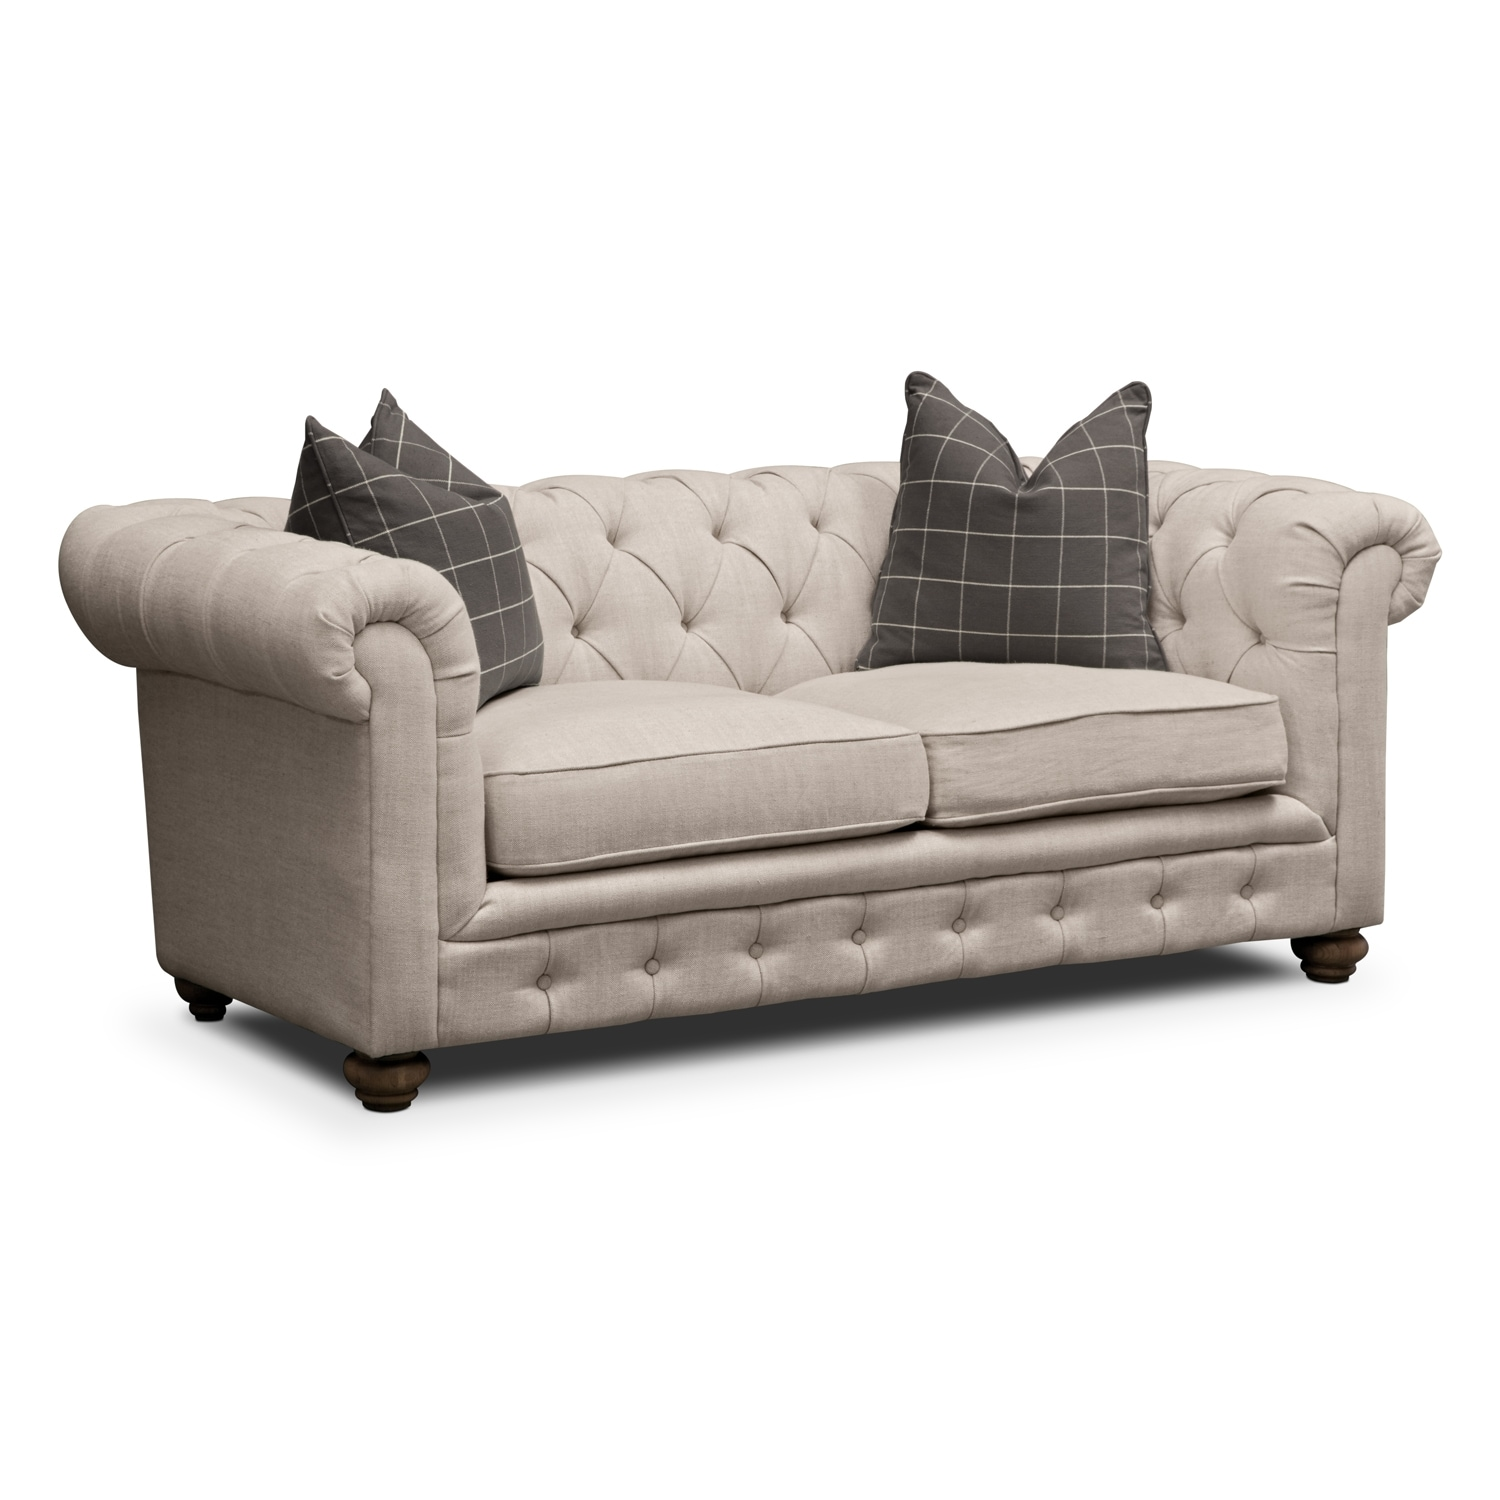 Loveseats American Signature American Signature Furniture